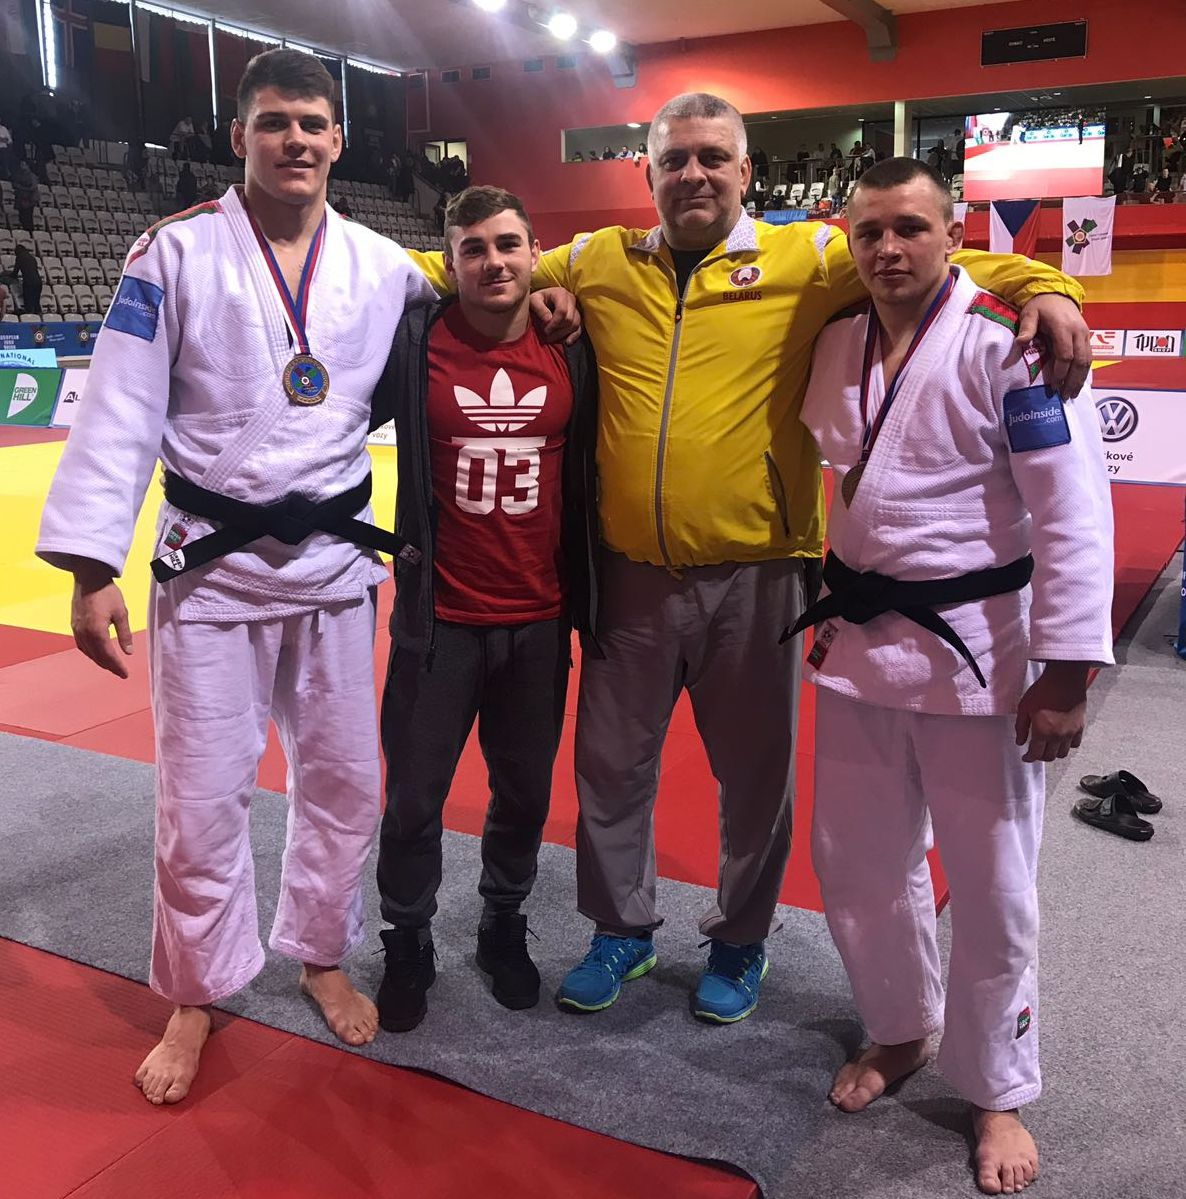 20180304_prague_mikita_sviryd_team